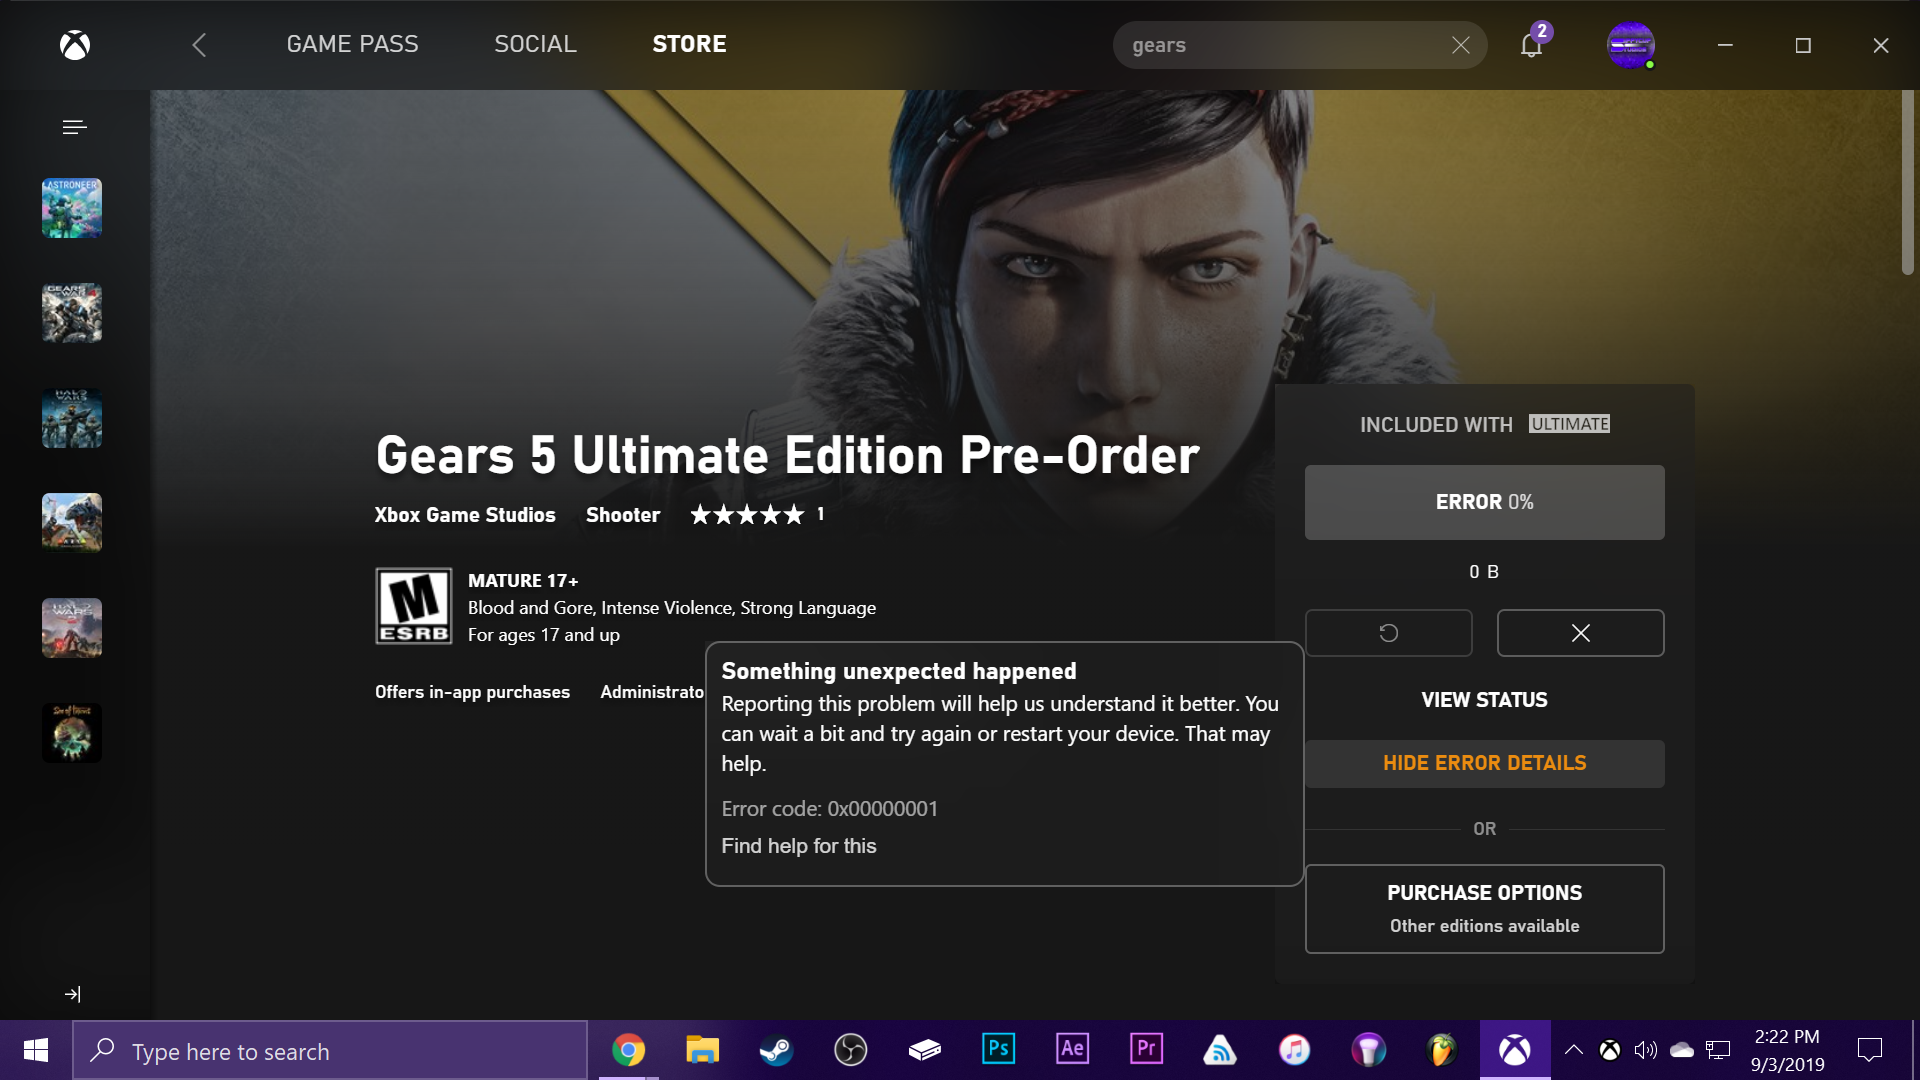 Can't pre-install Gears 5 with Xbox (Beta) app using Ultimate Game Pass [IMG]